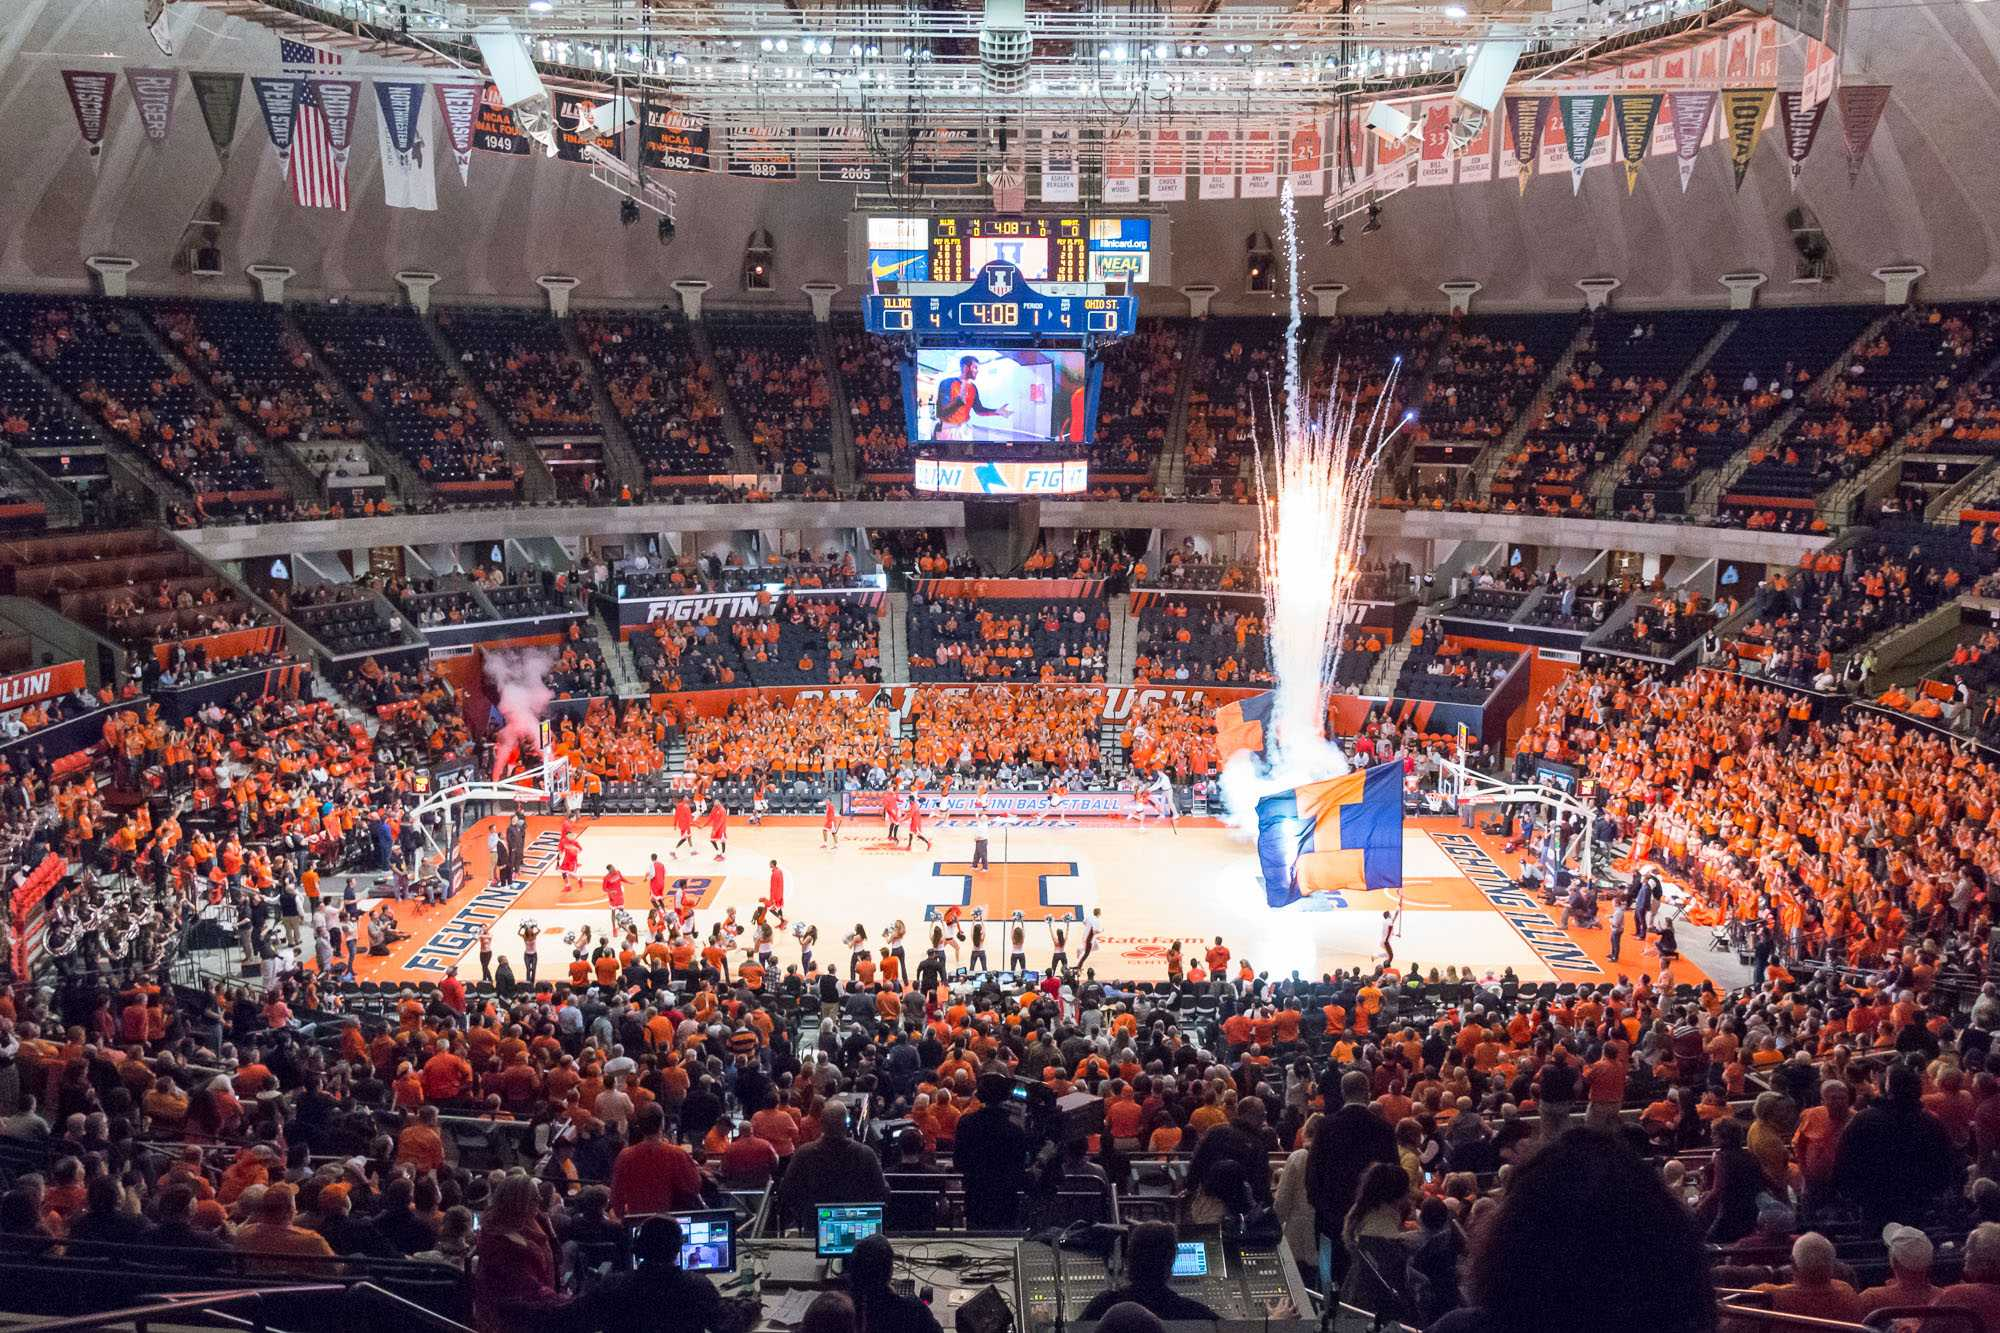 Fireworks go off as the Illinois basketball team comes onto the floor before the game against Ohio State at the State Farm Center on Thursday, January 28. The Illini lost in overtime 68-63.